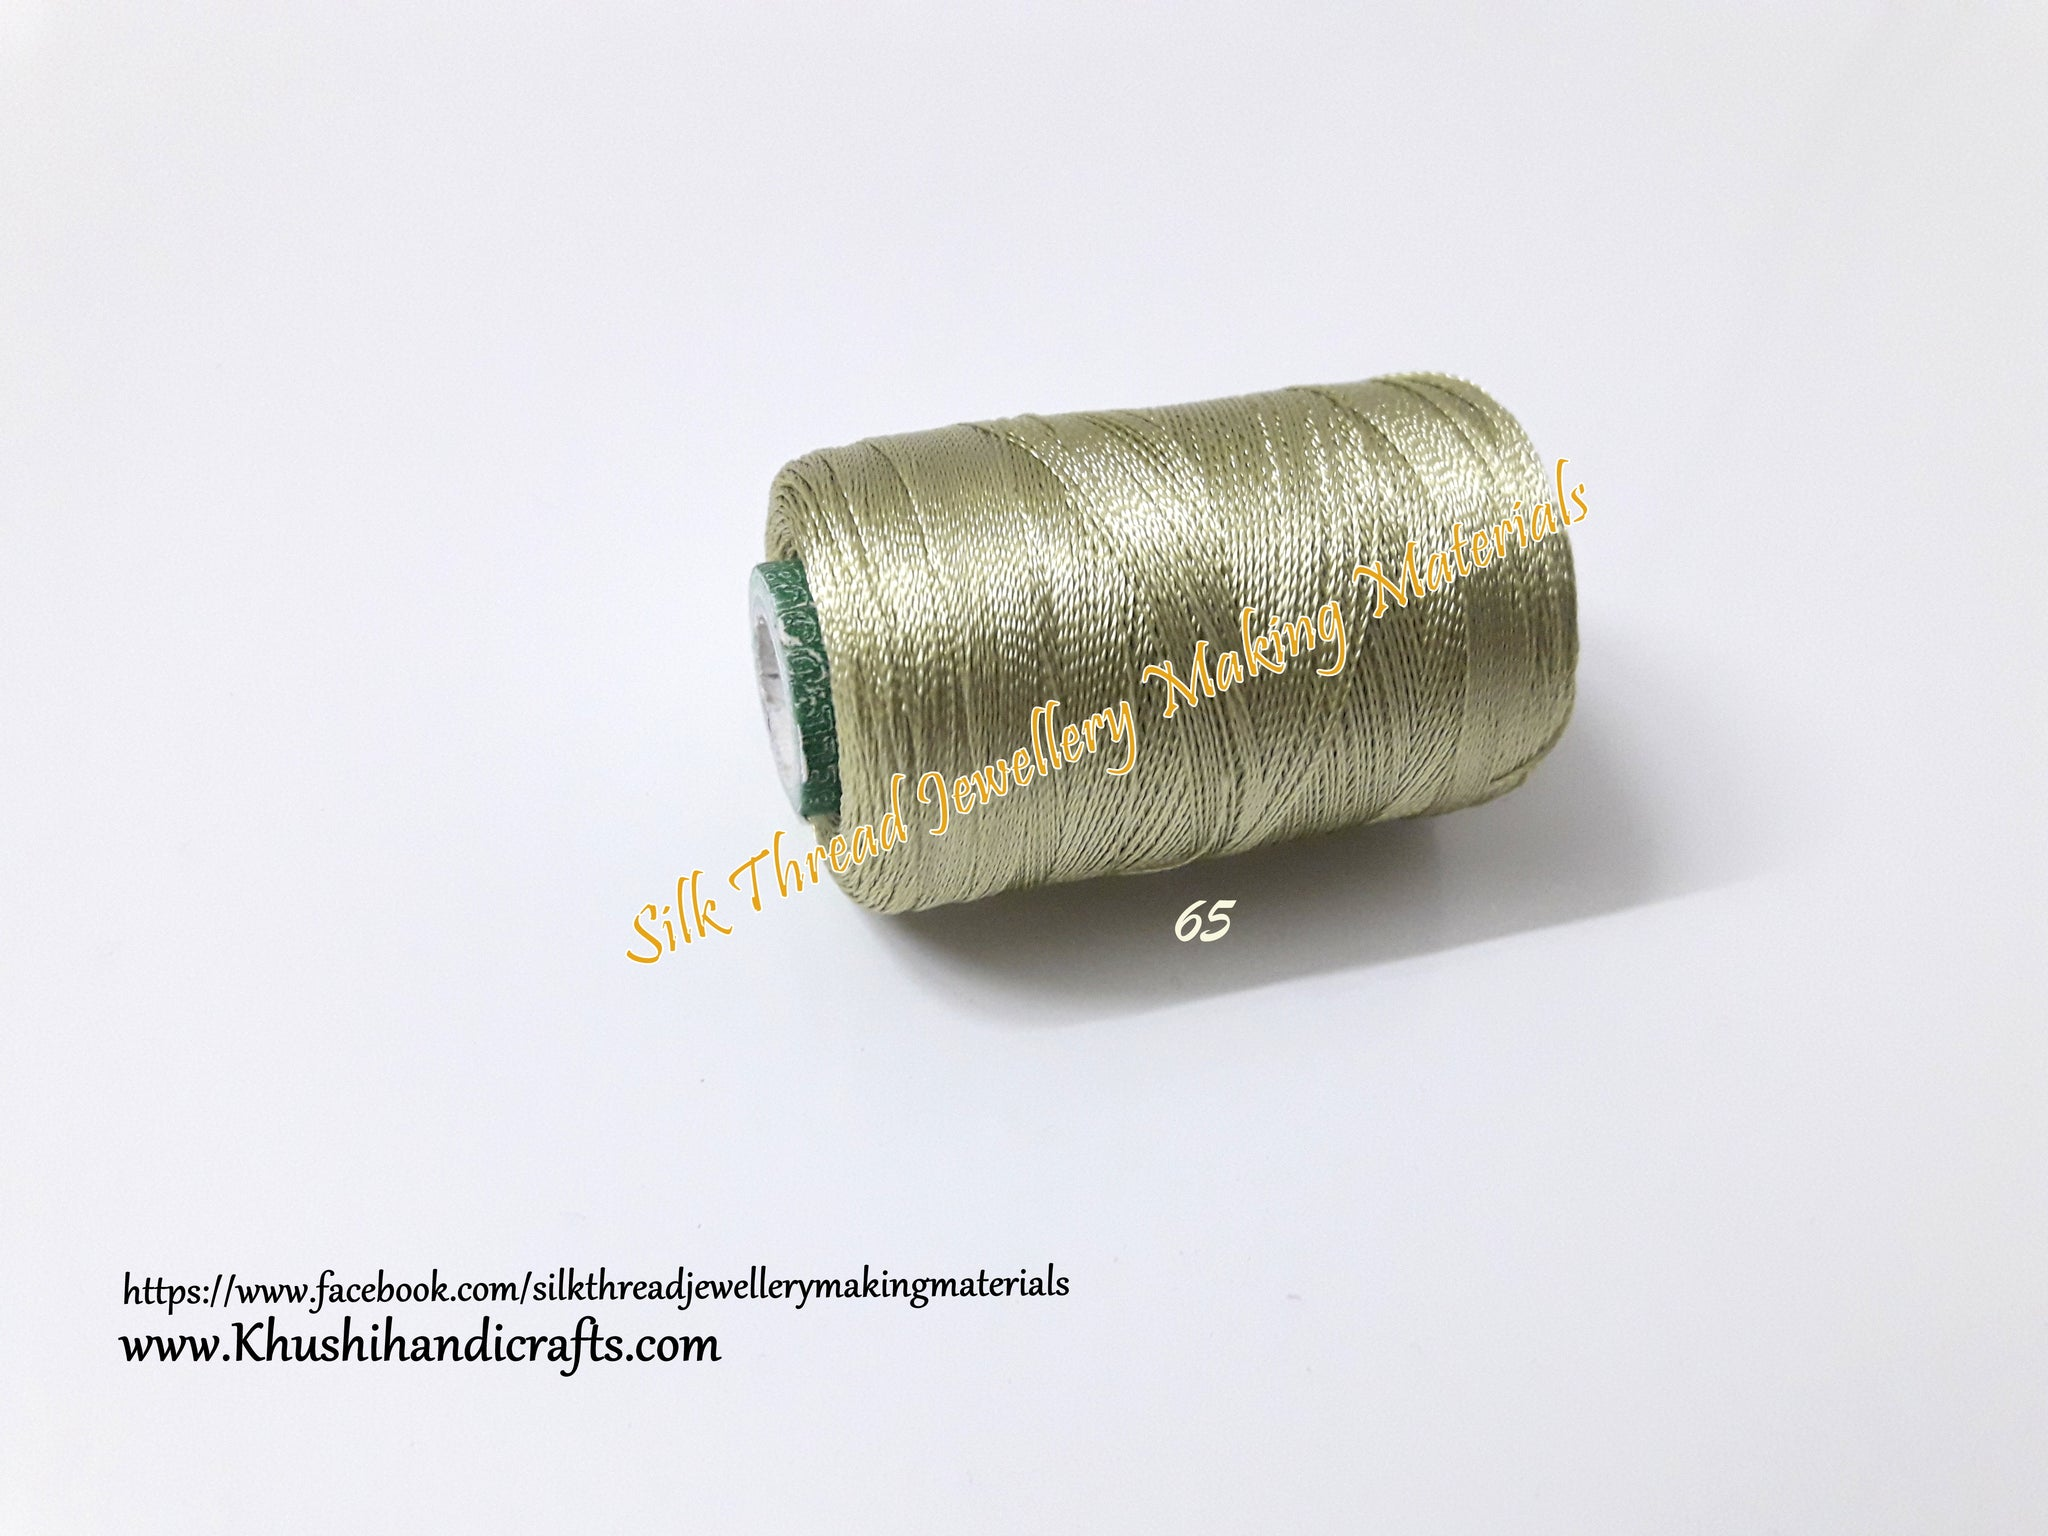 Shade 65 Double Bell Silk Thread